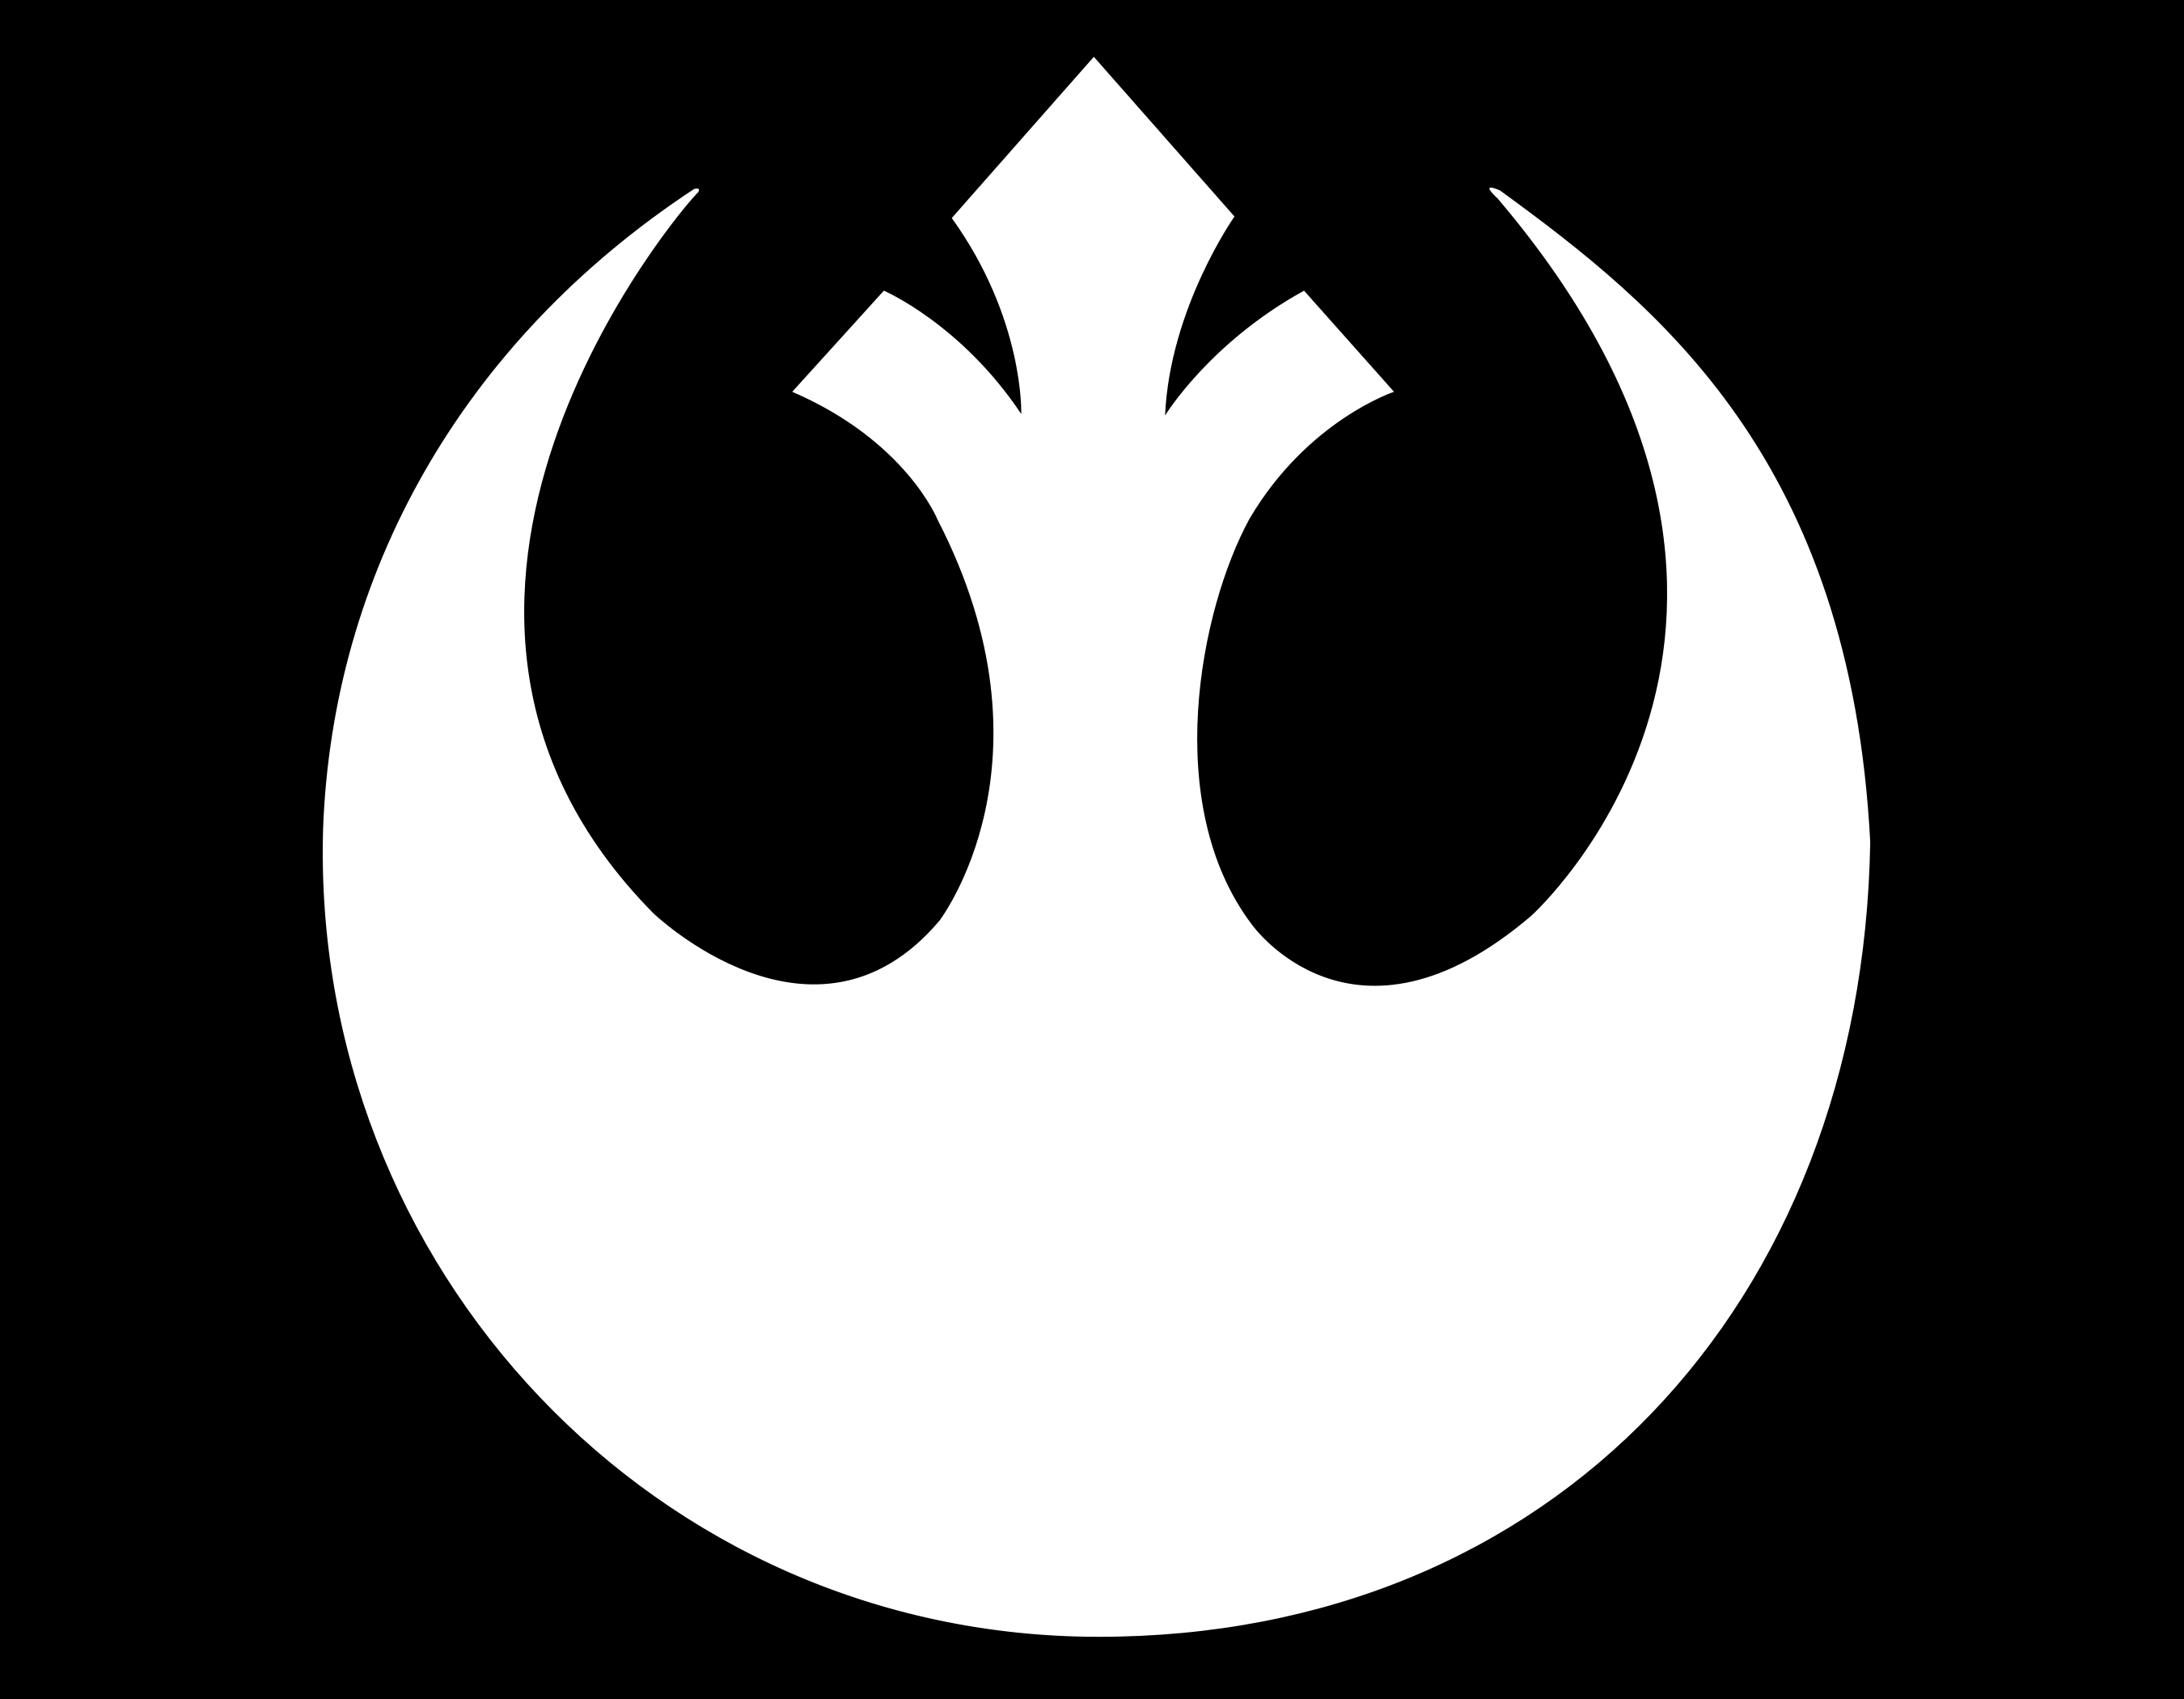 rebel alliance symbol png www pixshark com images galleries with a bite